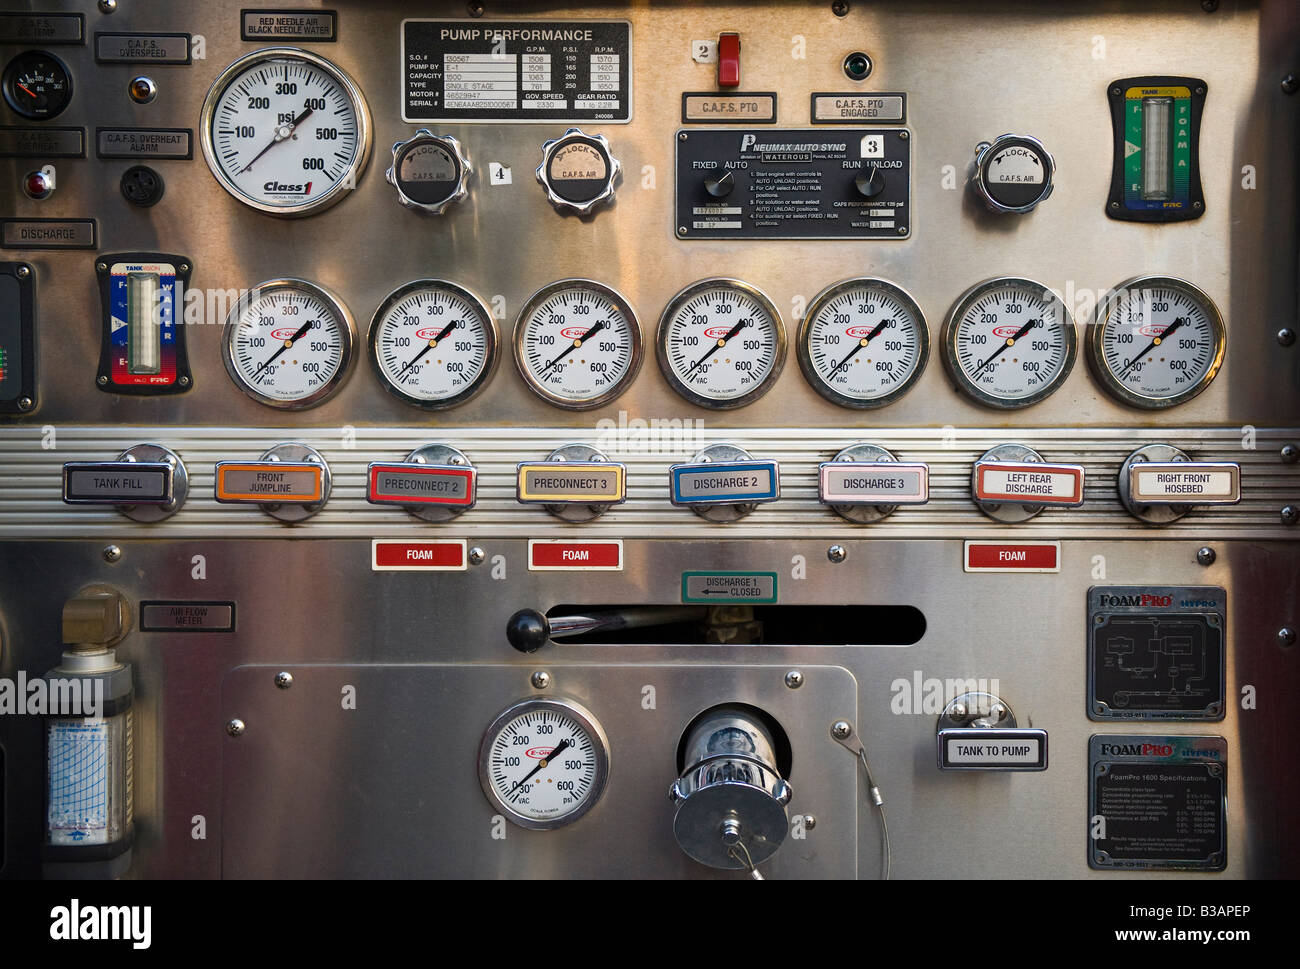 Water hose and pump control valves and gauges on a fire engine. - Stock Image